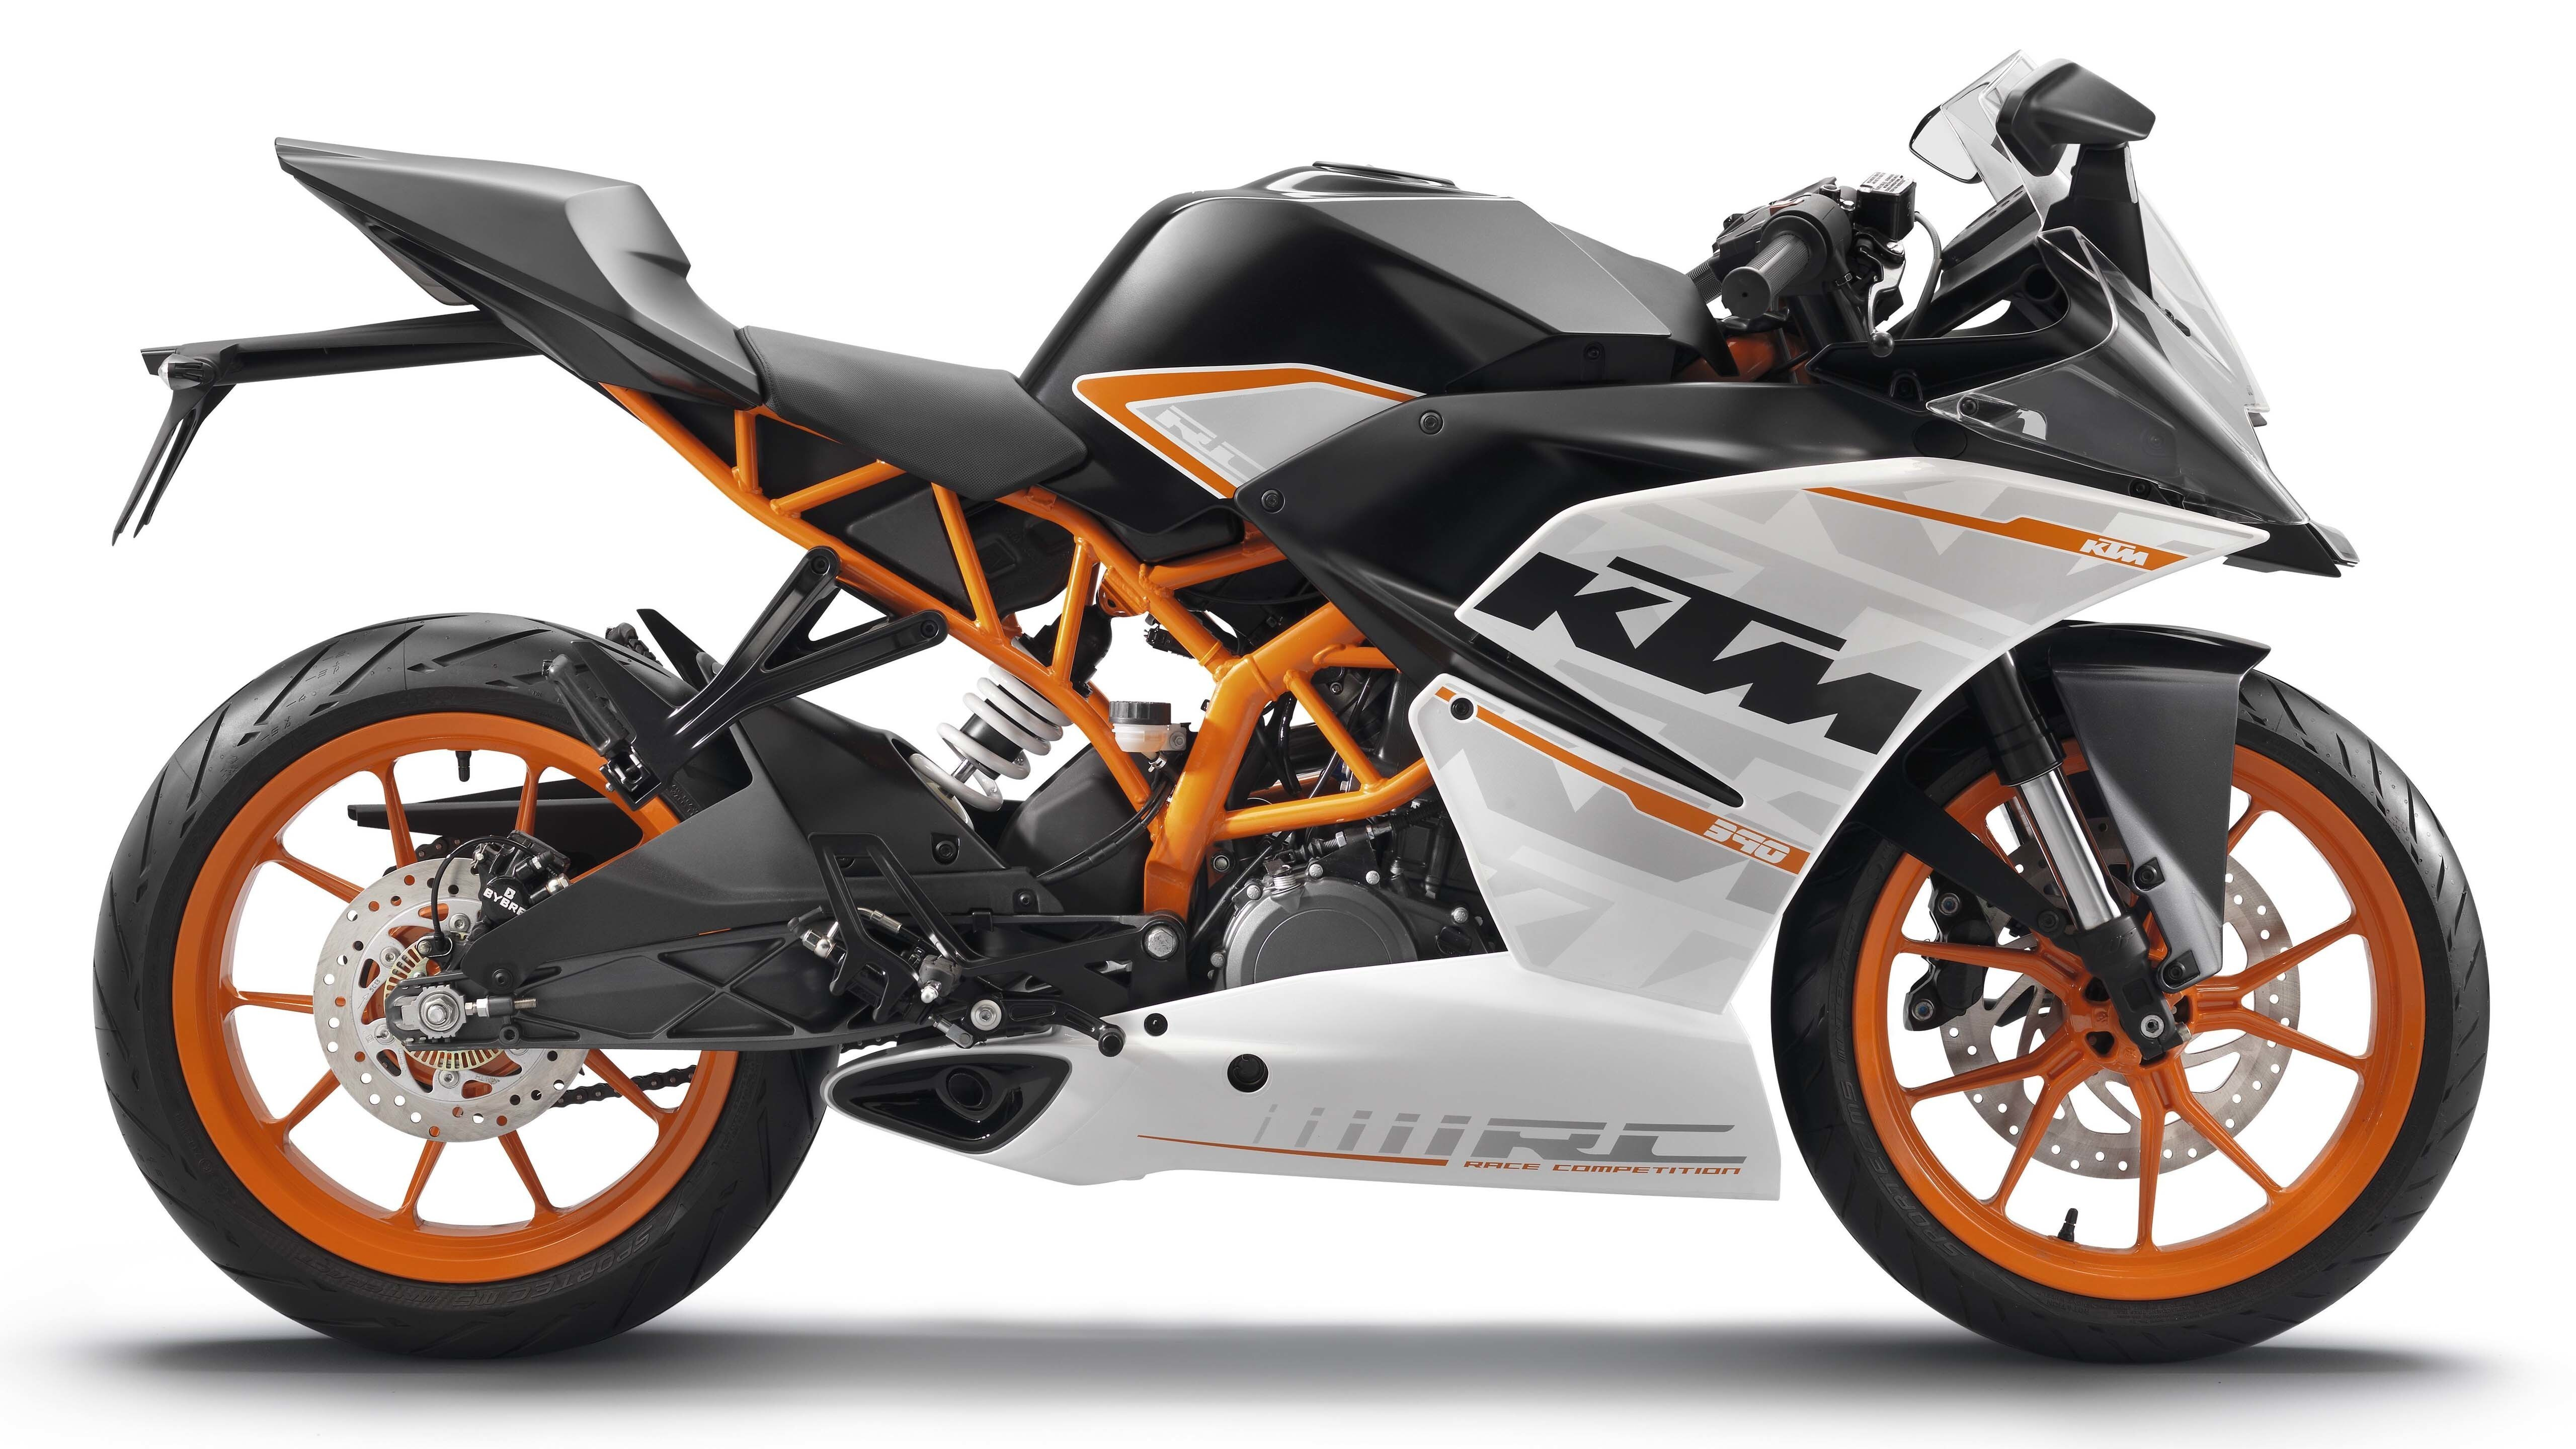 Ktm Rc 390 Motorcycle Hd Wallpapers